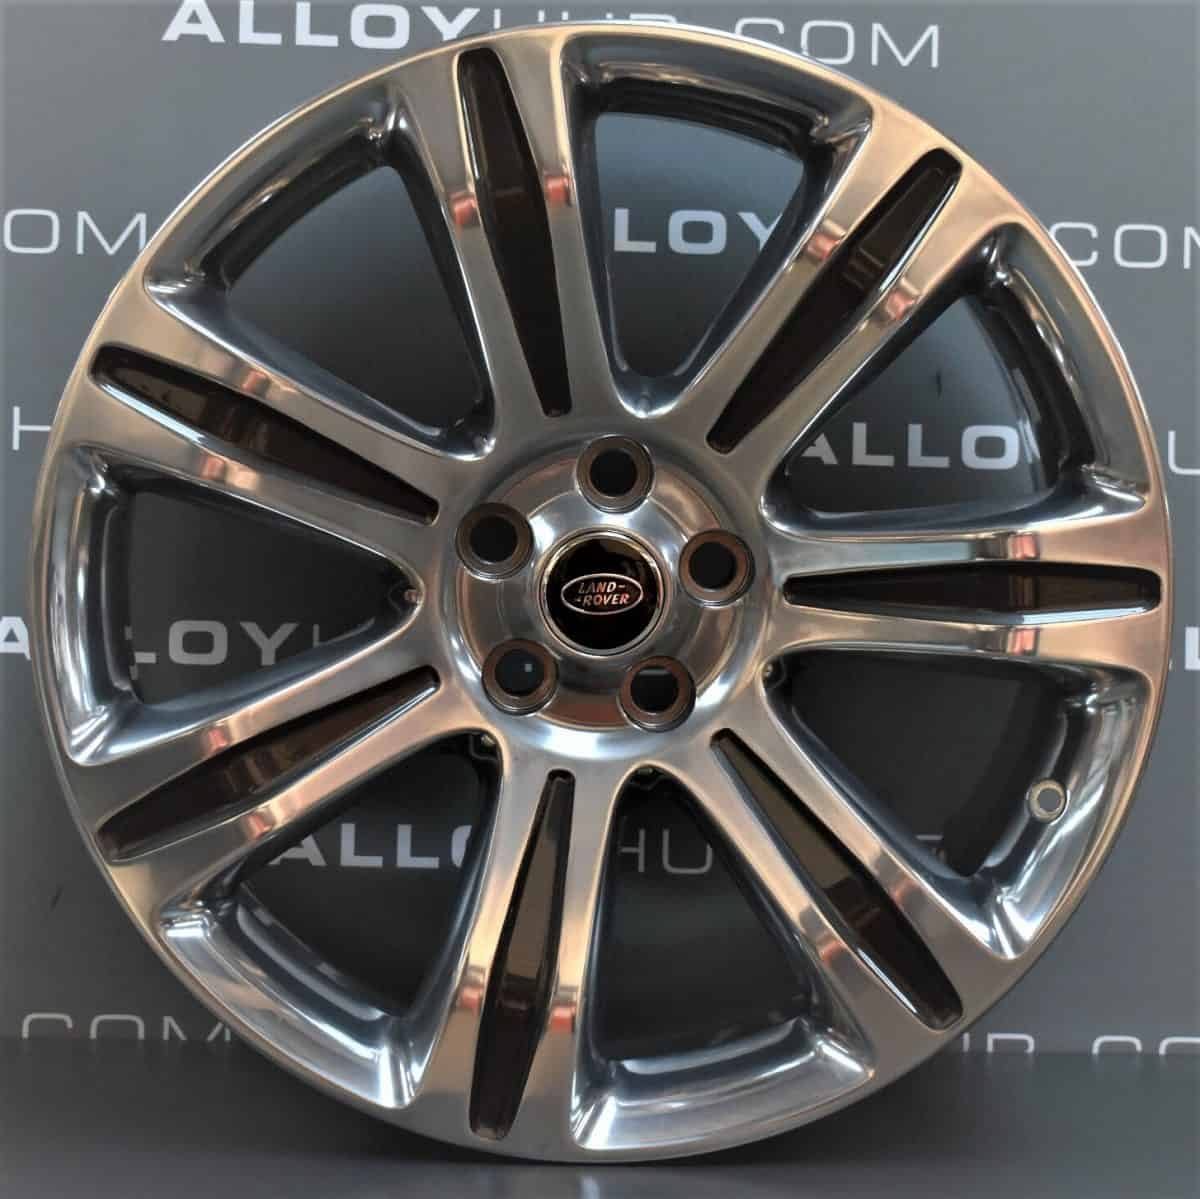 Genuine Range Rover SV L405/L494 Sport Autobiography Style 7006 21″ inch Alloy Wheels with Grey & Polished Finish DK5M-1007-AB